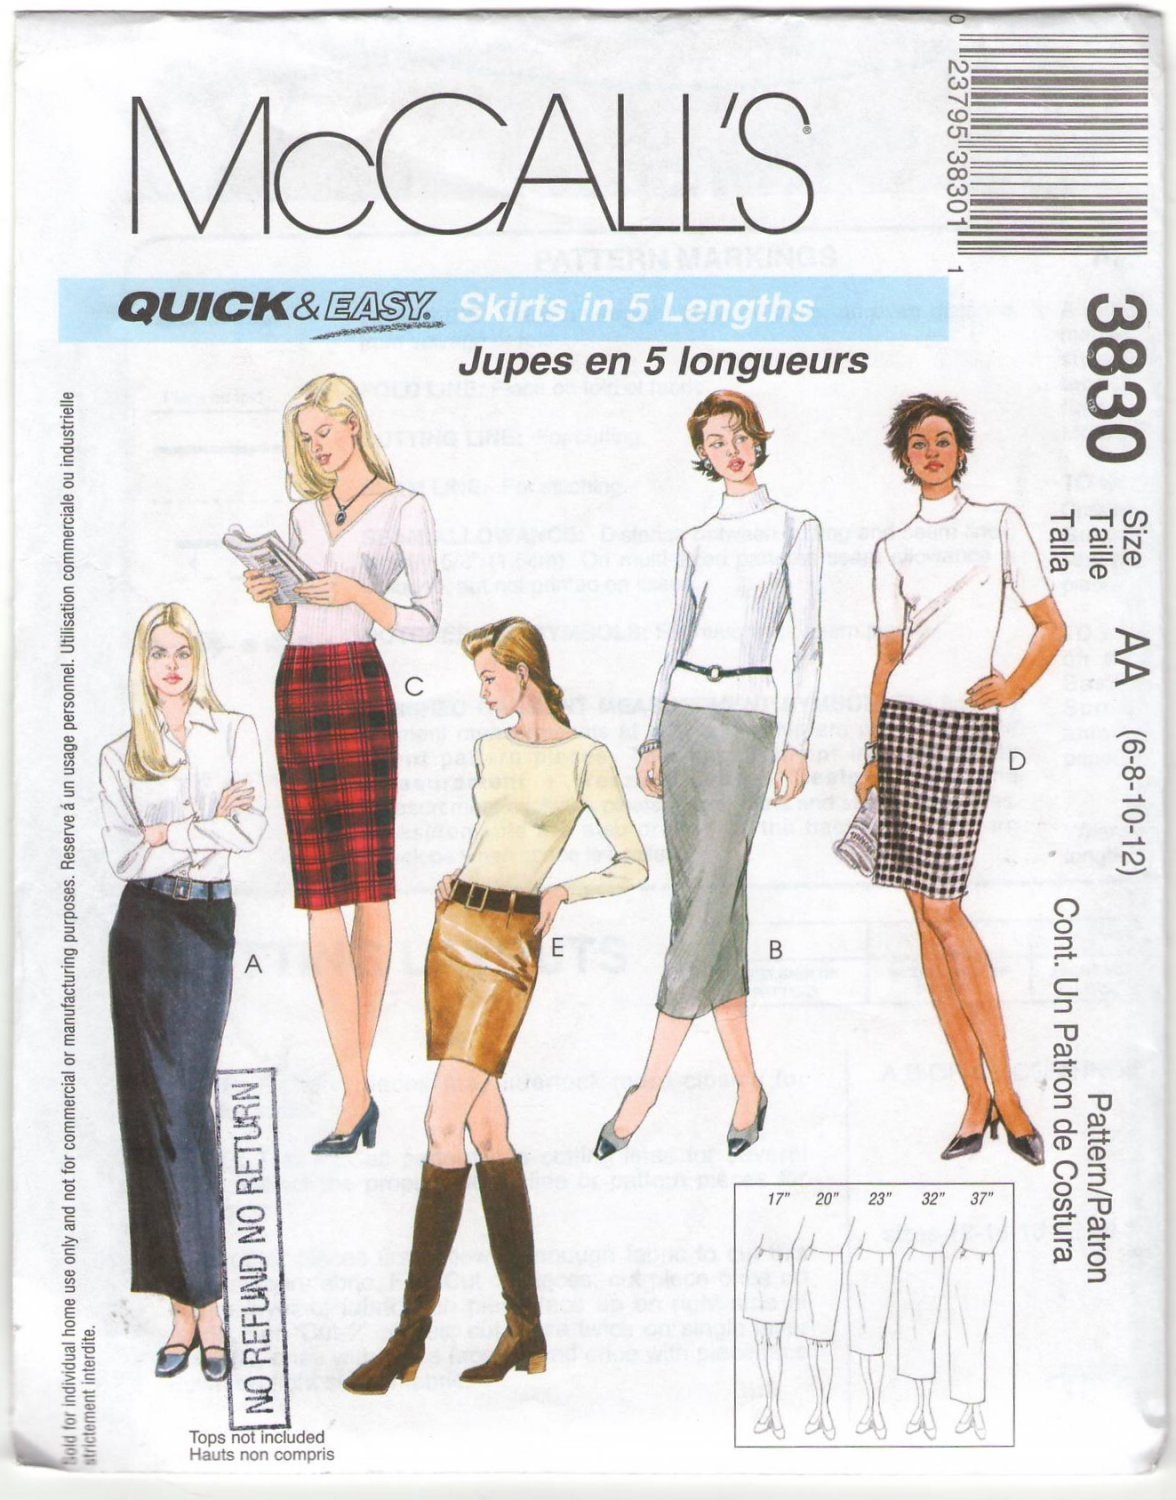 McCall's 3830 Size AA 6 8 10 12 Skirts In 5 Lengths Long Short Quick and Easy Uncut Sewing Pattern